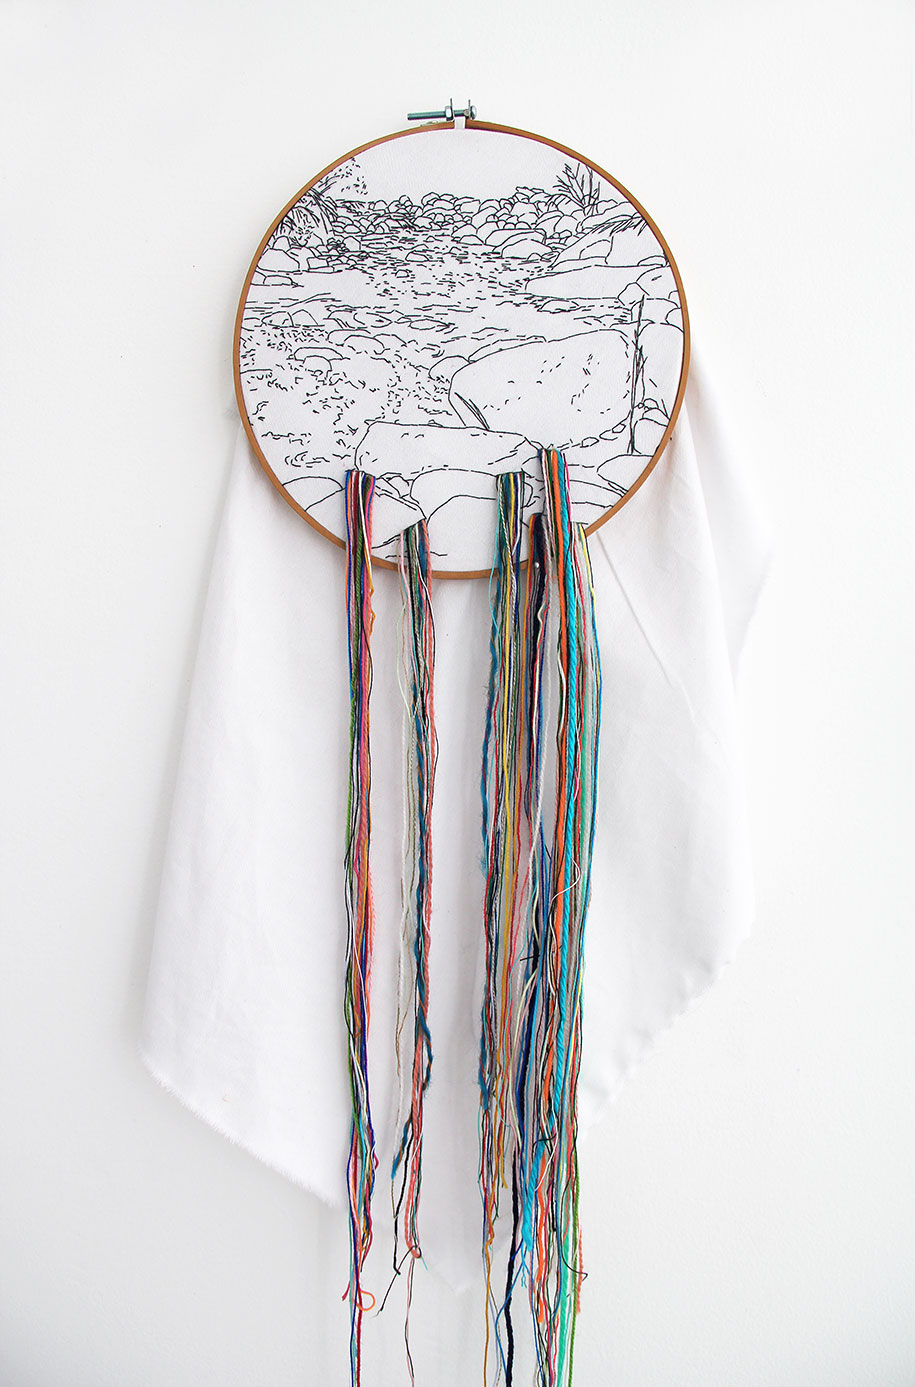 embroidered-landscapes-art-ana-teresa-barboza-8